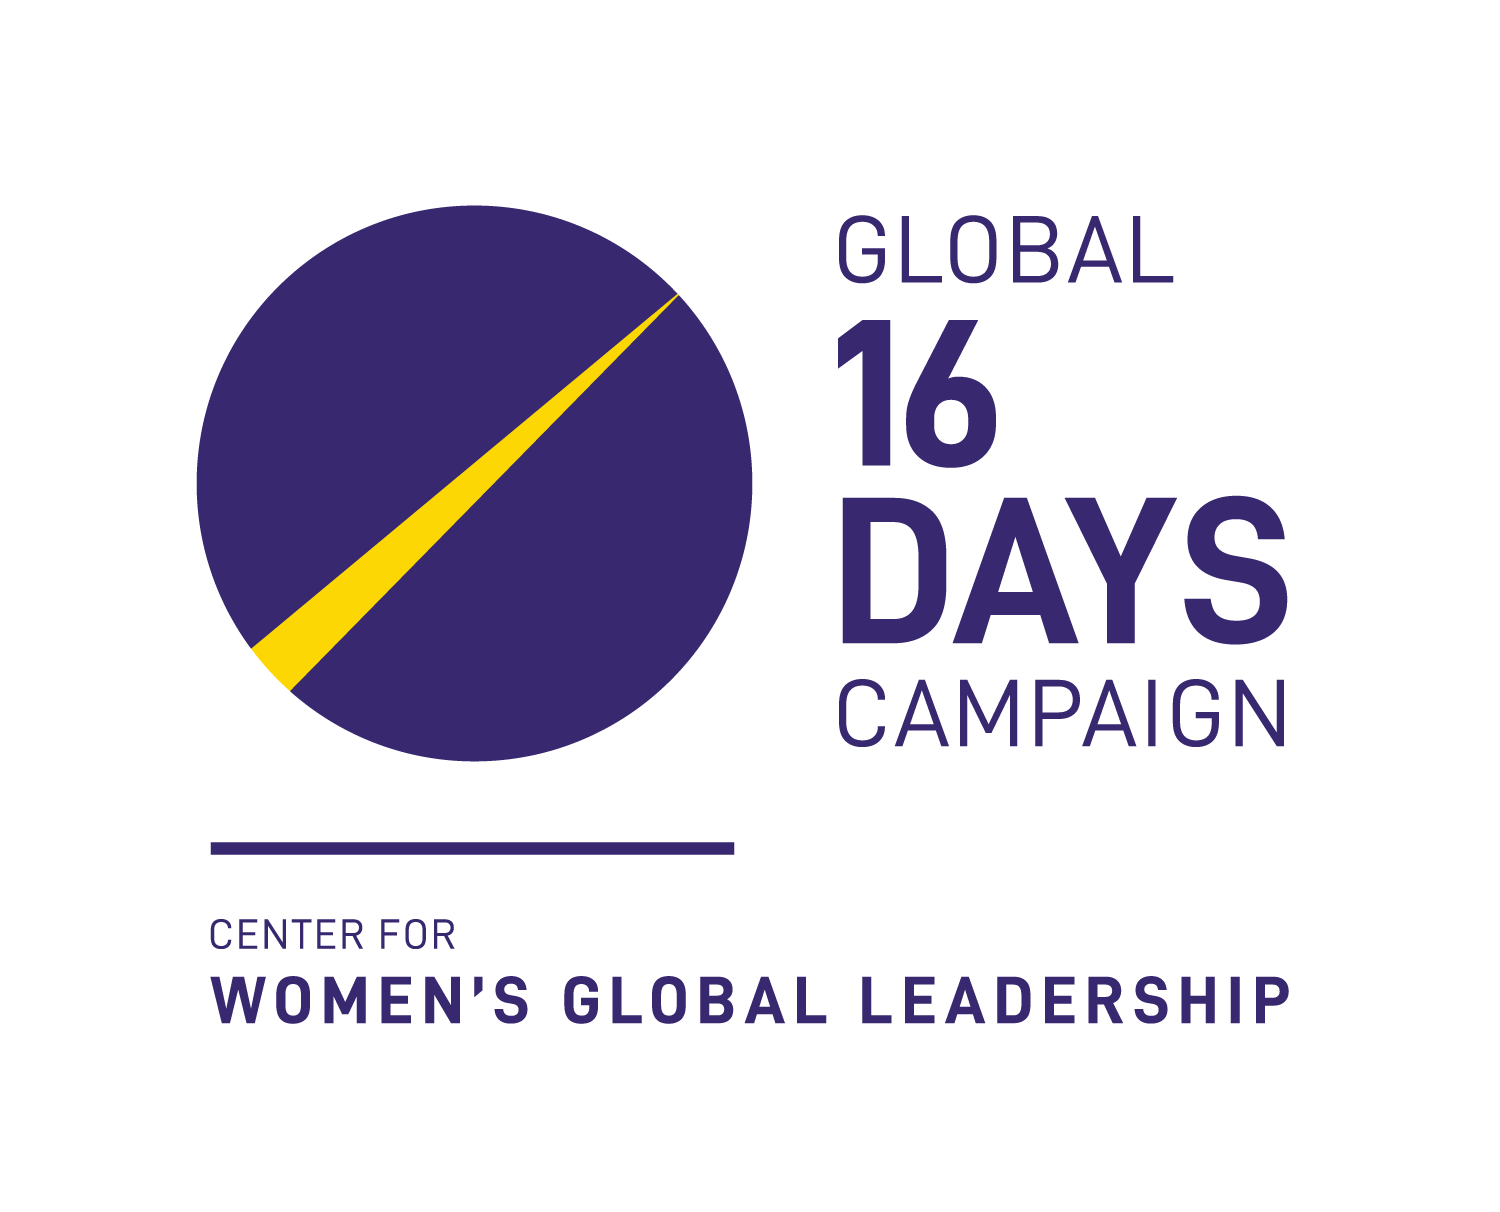 16 Days Campaign - From Awareness to Accountability